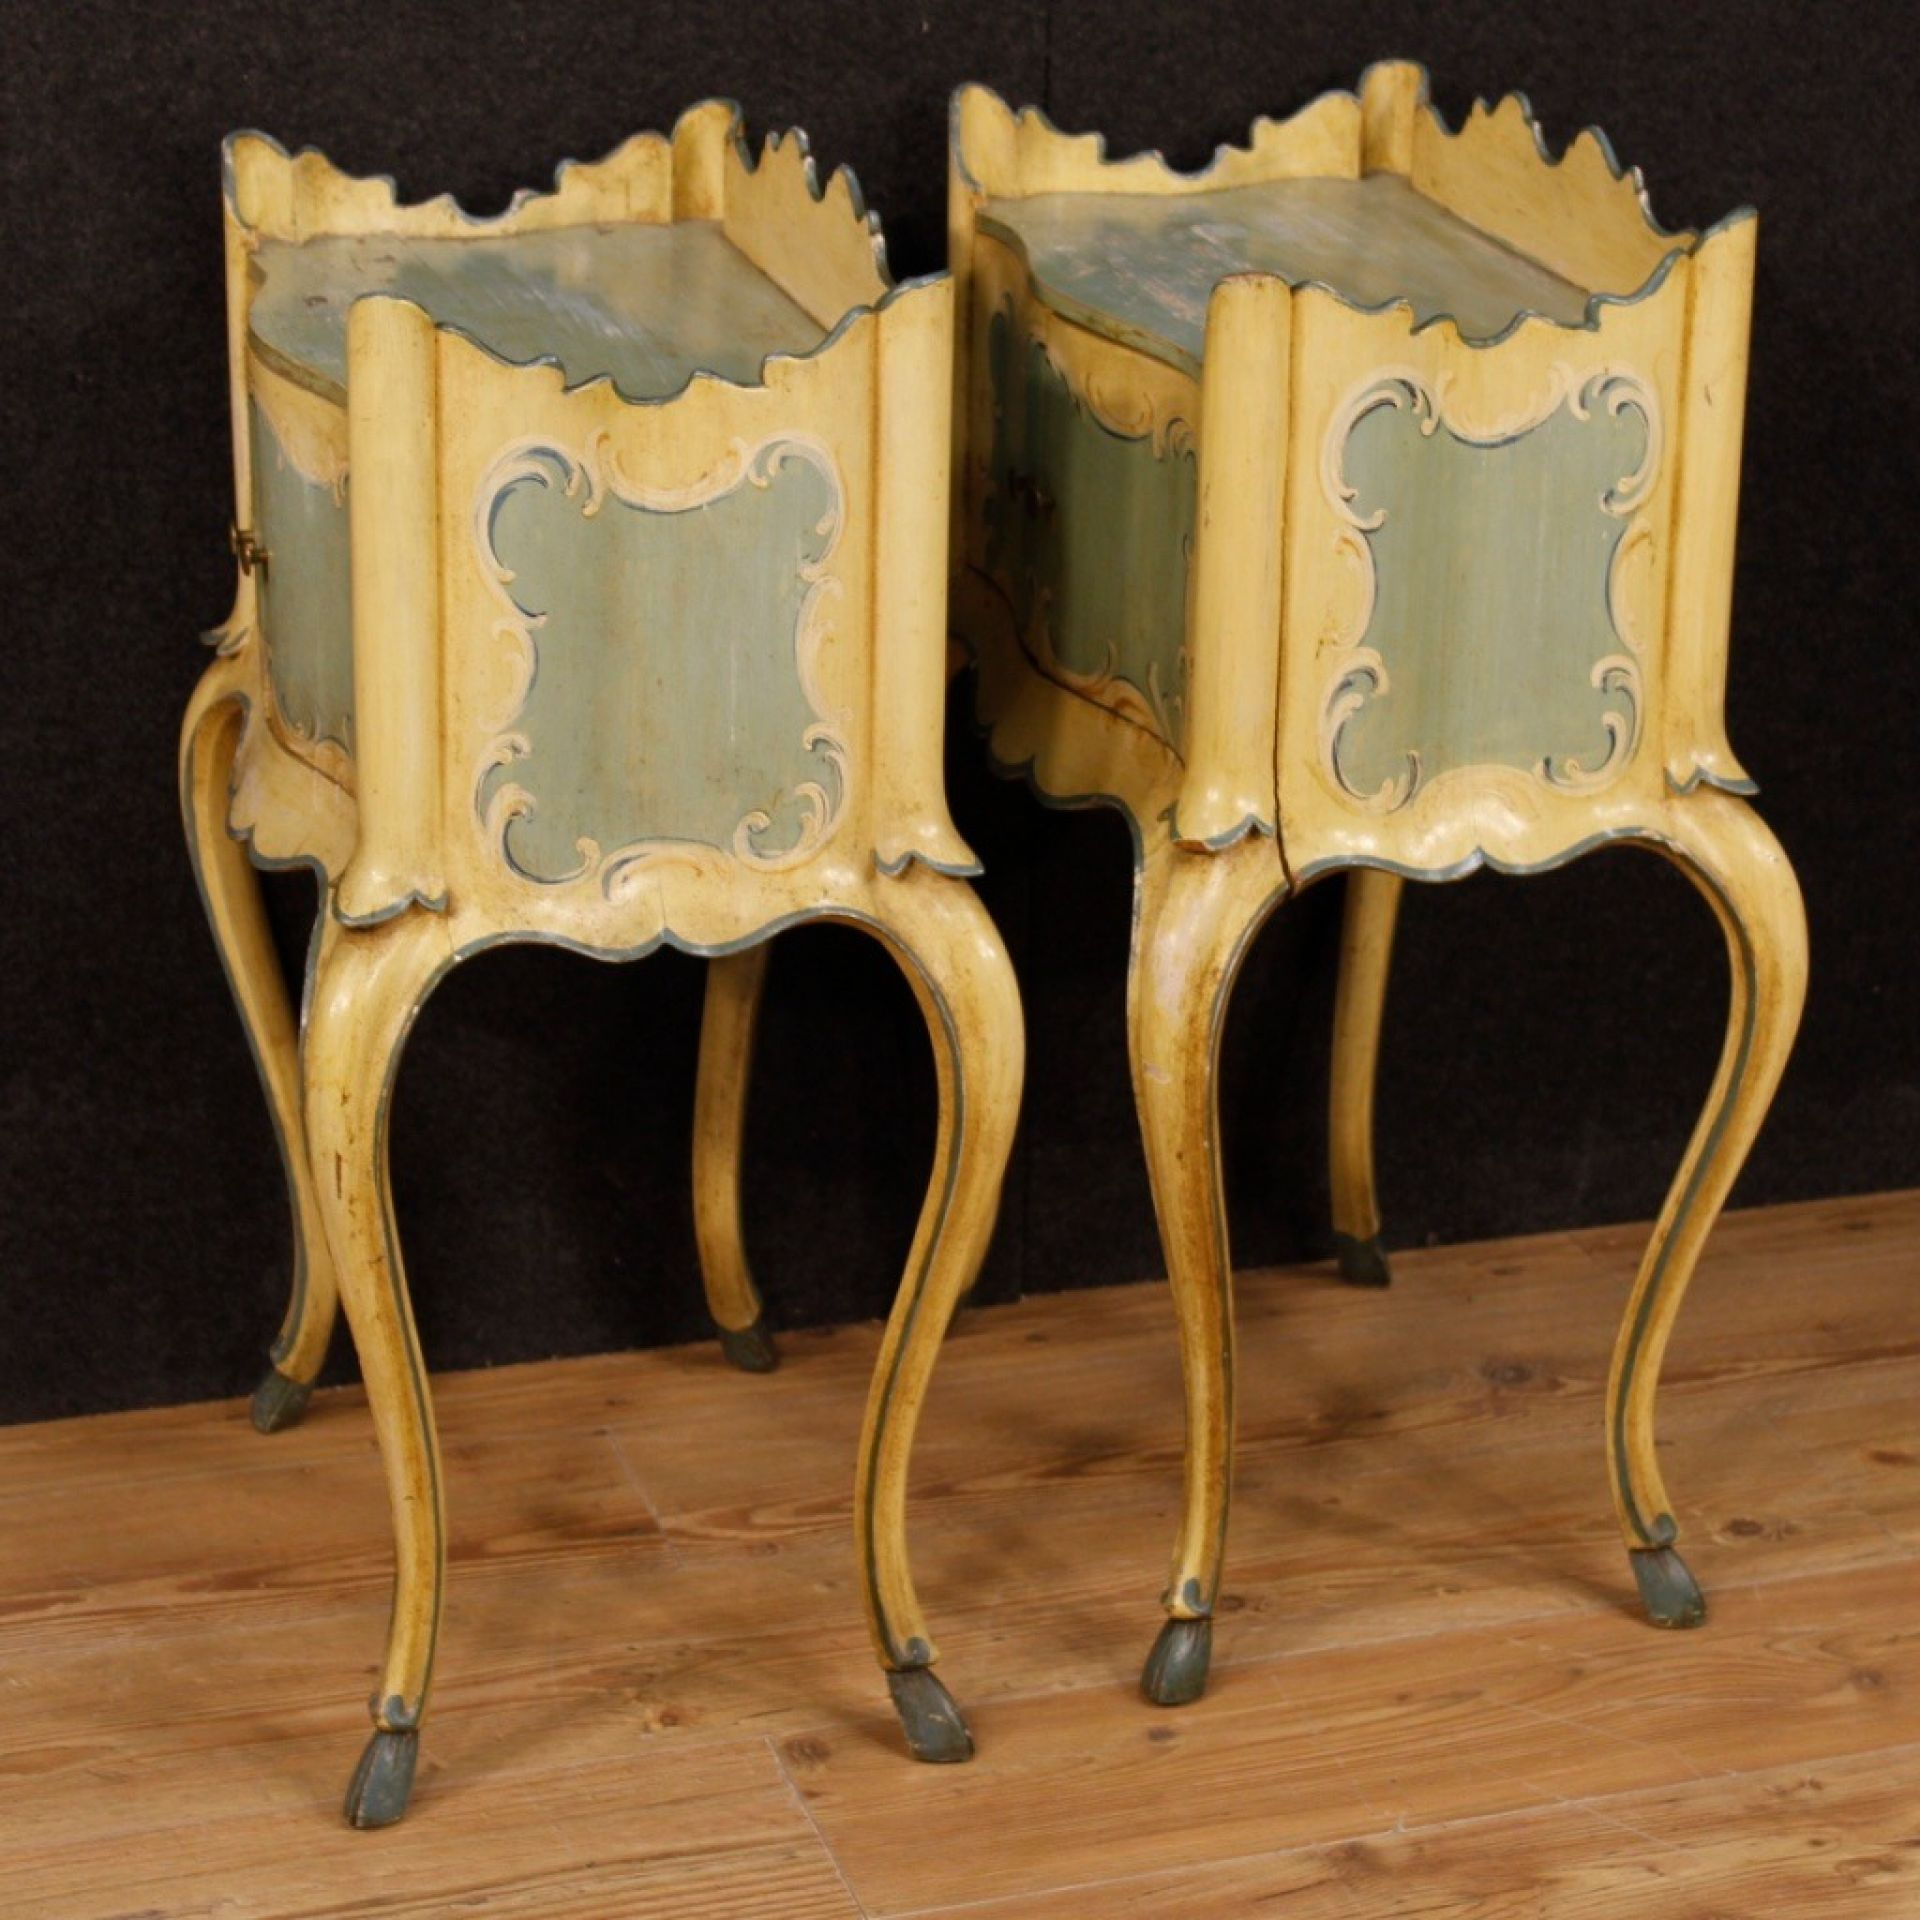 20th Century Lacquered and Painted Wood Pair of Venetian Bedside Tables, 1950